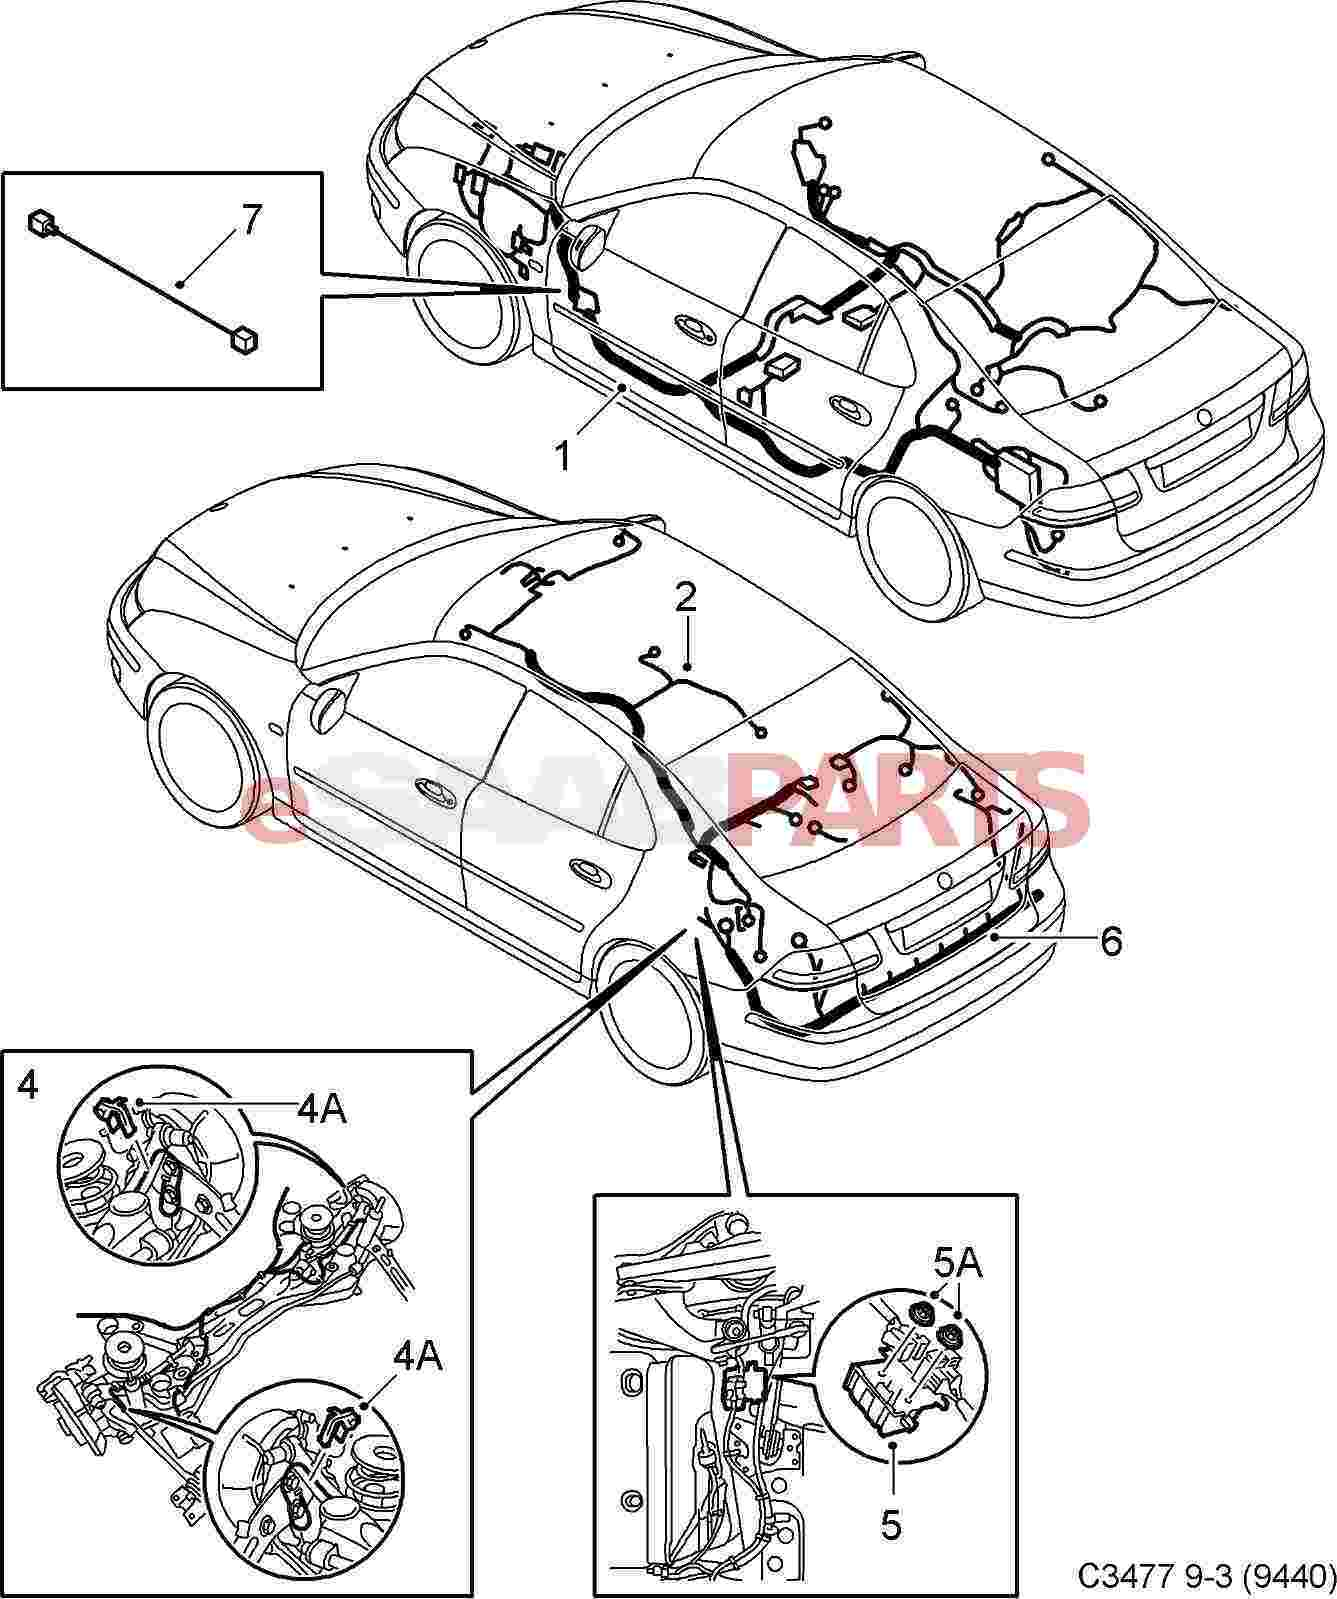 12804652 saab cable harness genuine saab parts from esaabparts com rh  esaabparts com Wiring Diagrams Saab C900 For Saab Starter Wiring Diagram 03